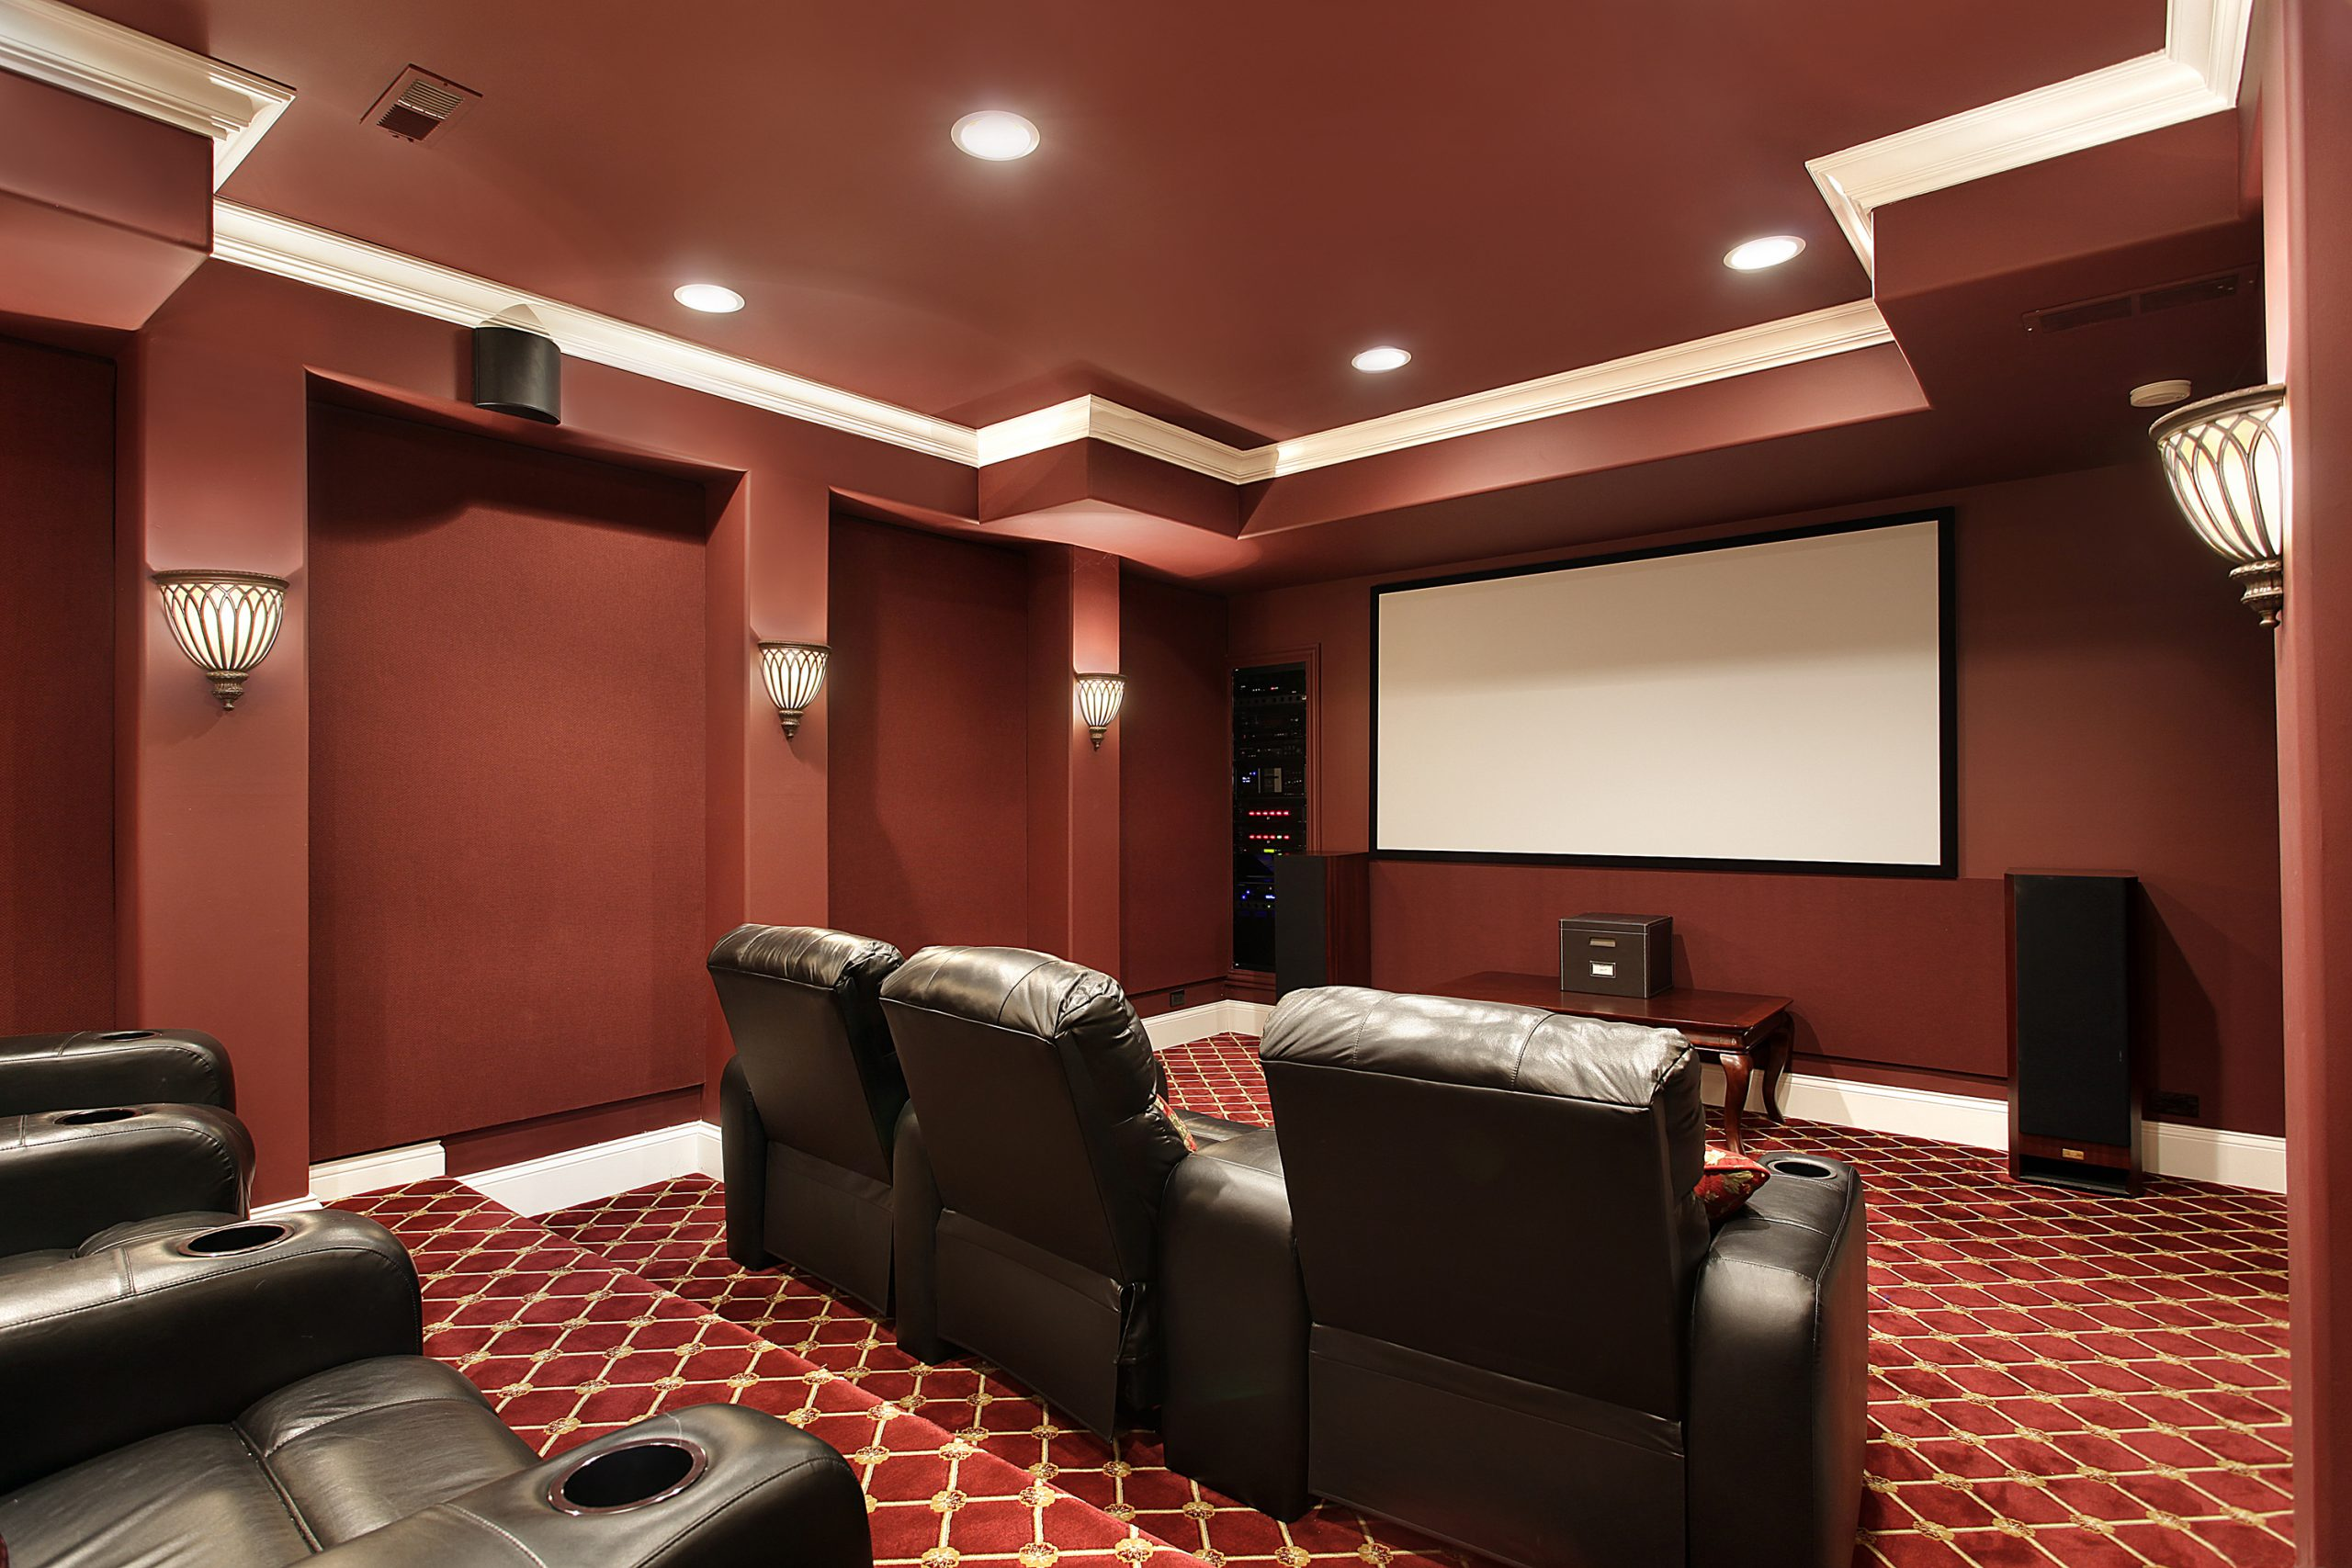 If you have always dreamed of having a home theater, check out one of these incredibly easy home theater designs. And, decor is a must! We have the best home theater decor ideas!